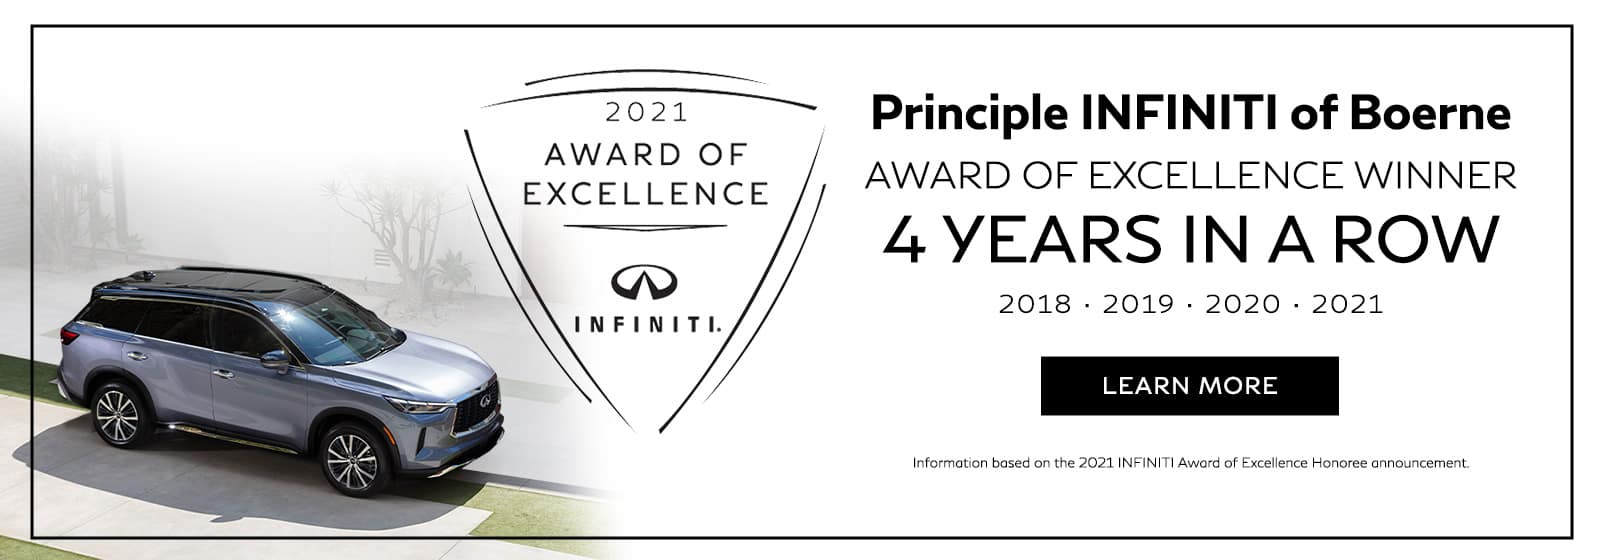 Principle INFINITI of Boerne Award of Excellence